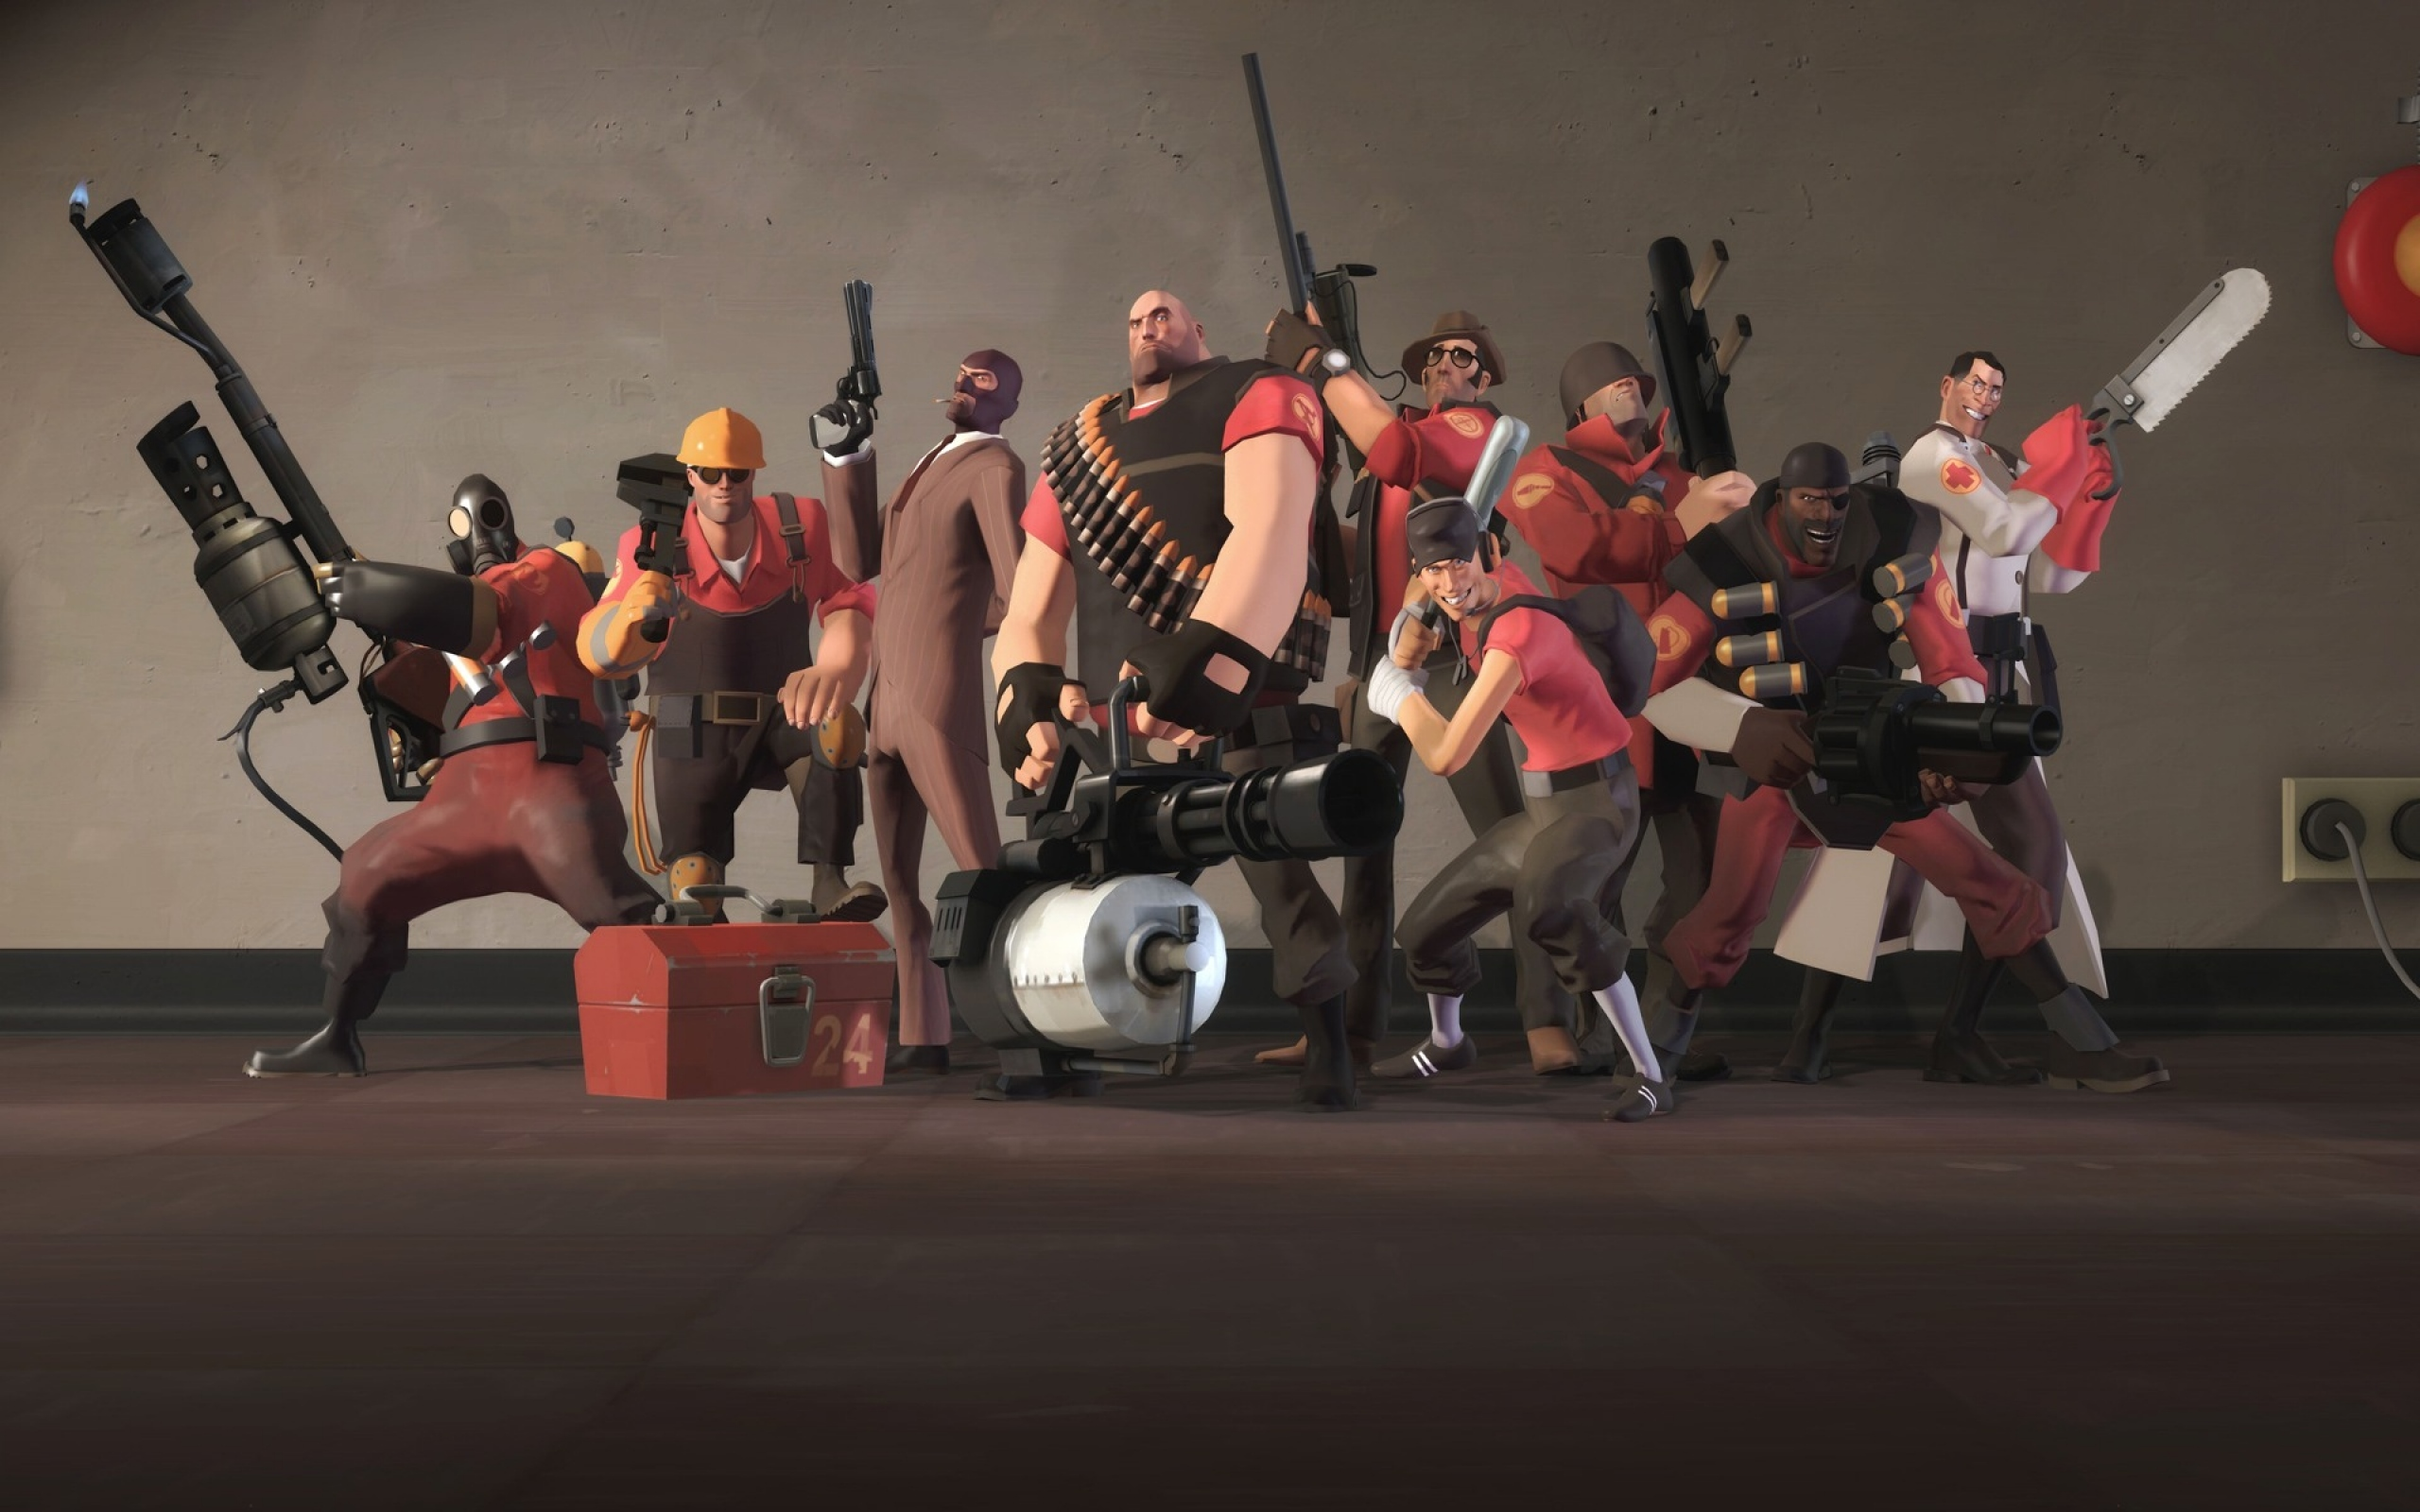 video games Heavy TF2 HD Wallpaper